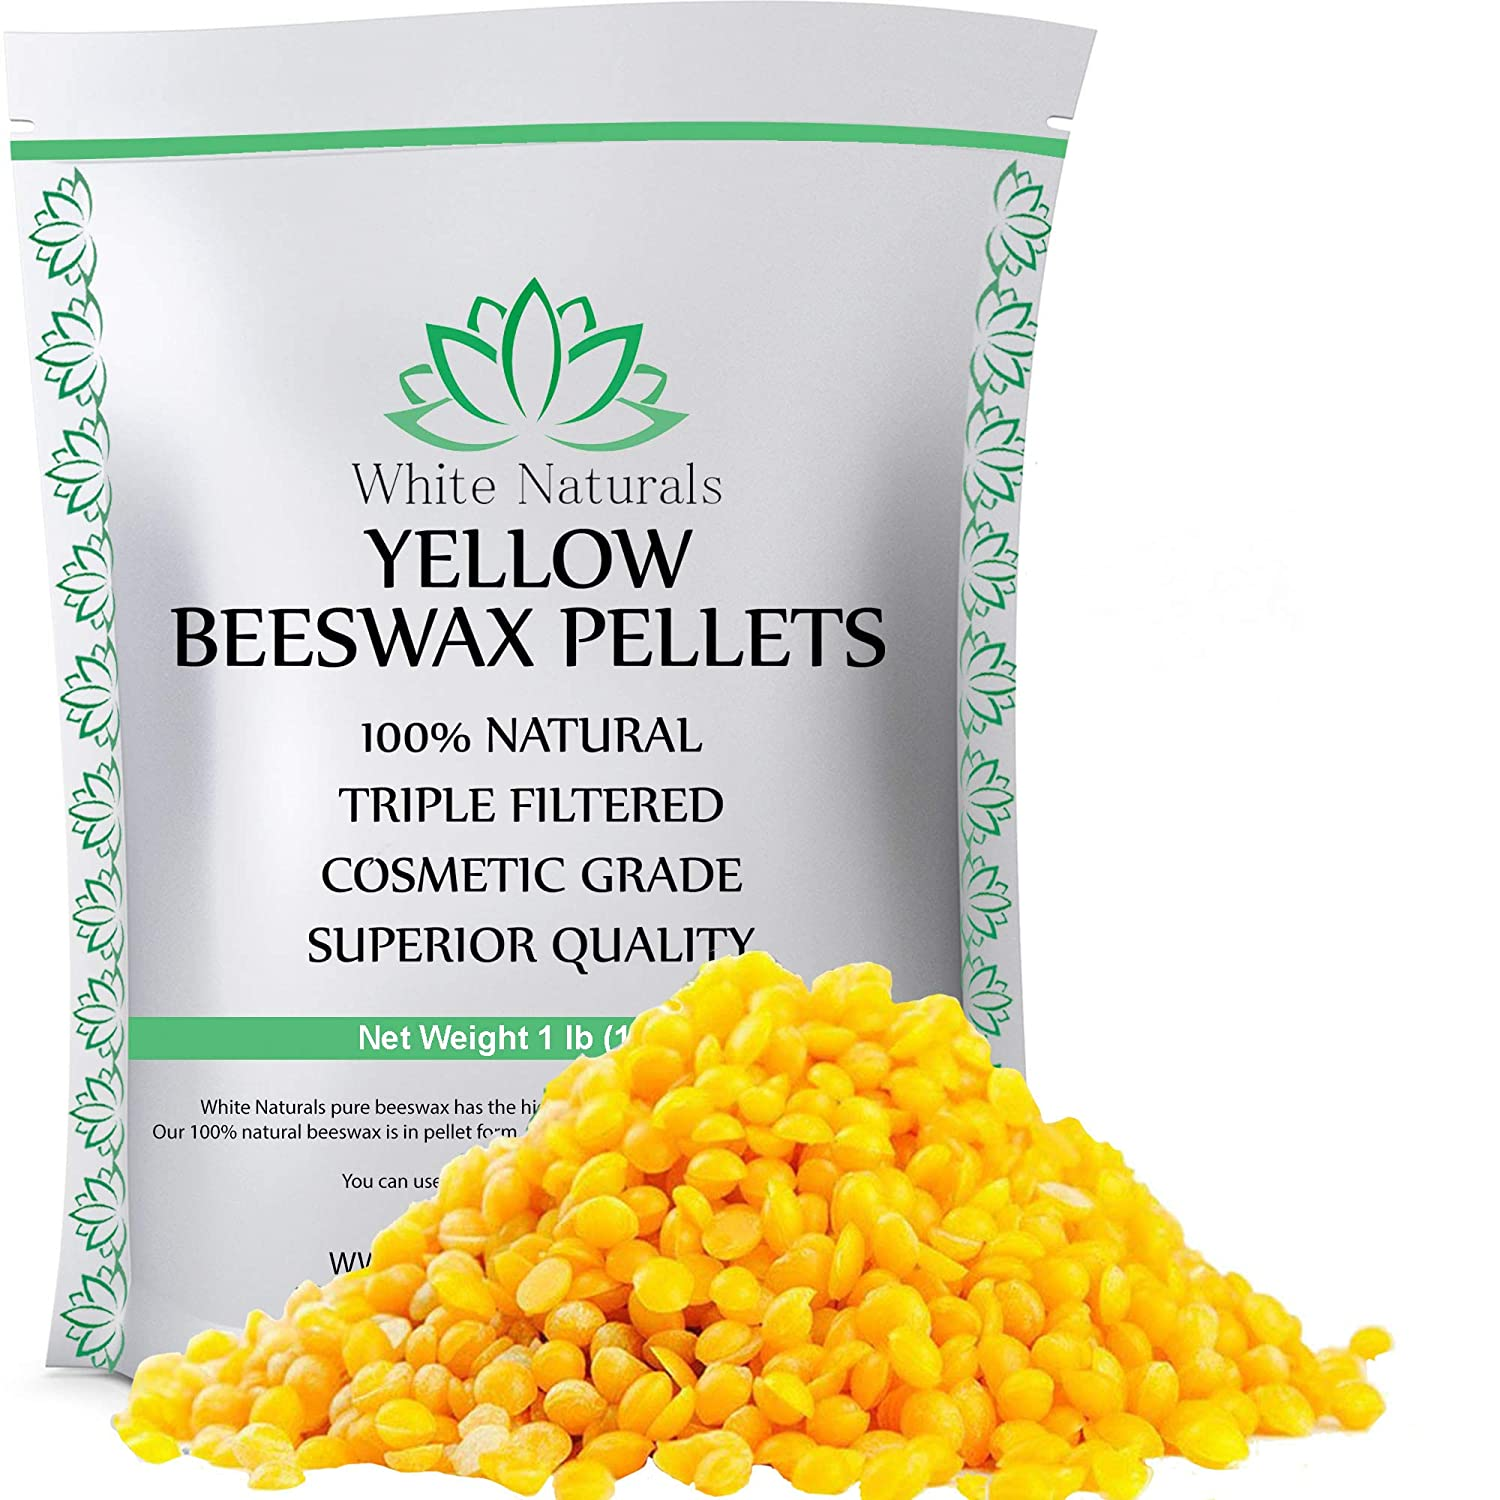 Limited Time Sale! Beeswax Pellets 1 lb, Yellow, Pure, Natural, Cosmetic Grade, Bees Wax Pastilles, Triple Filtered, Great for DIY Projects, Lip Balms, Lotions, Candles by White Naturals